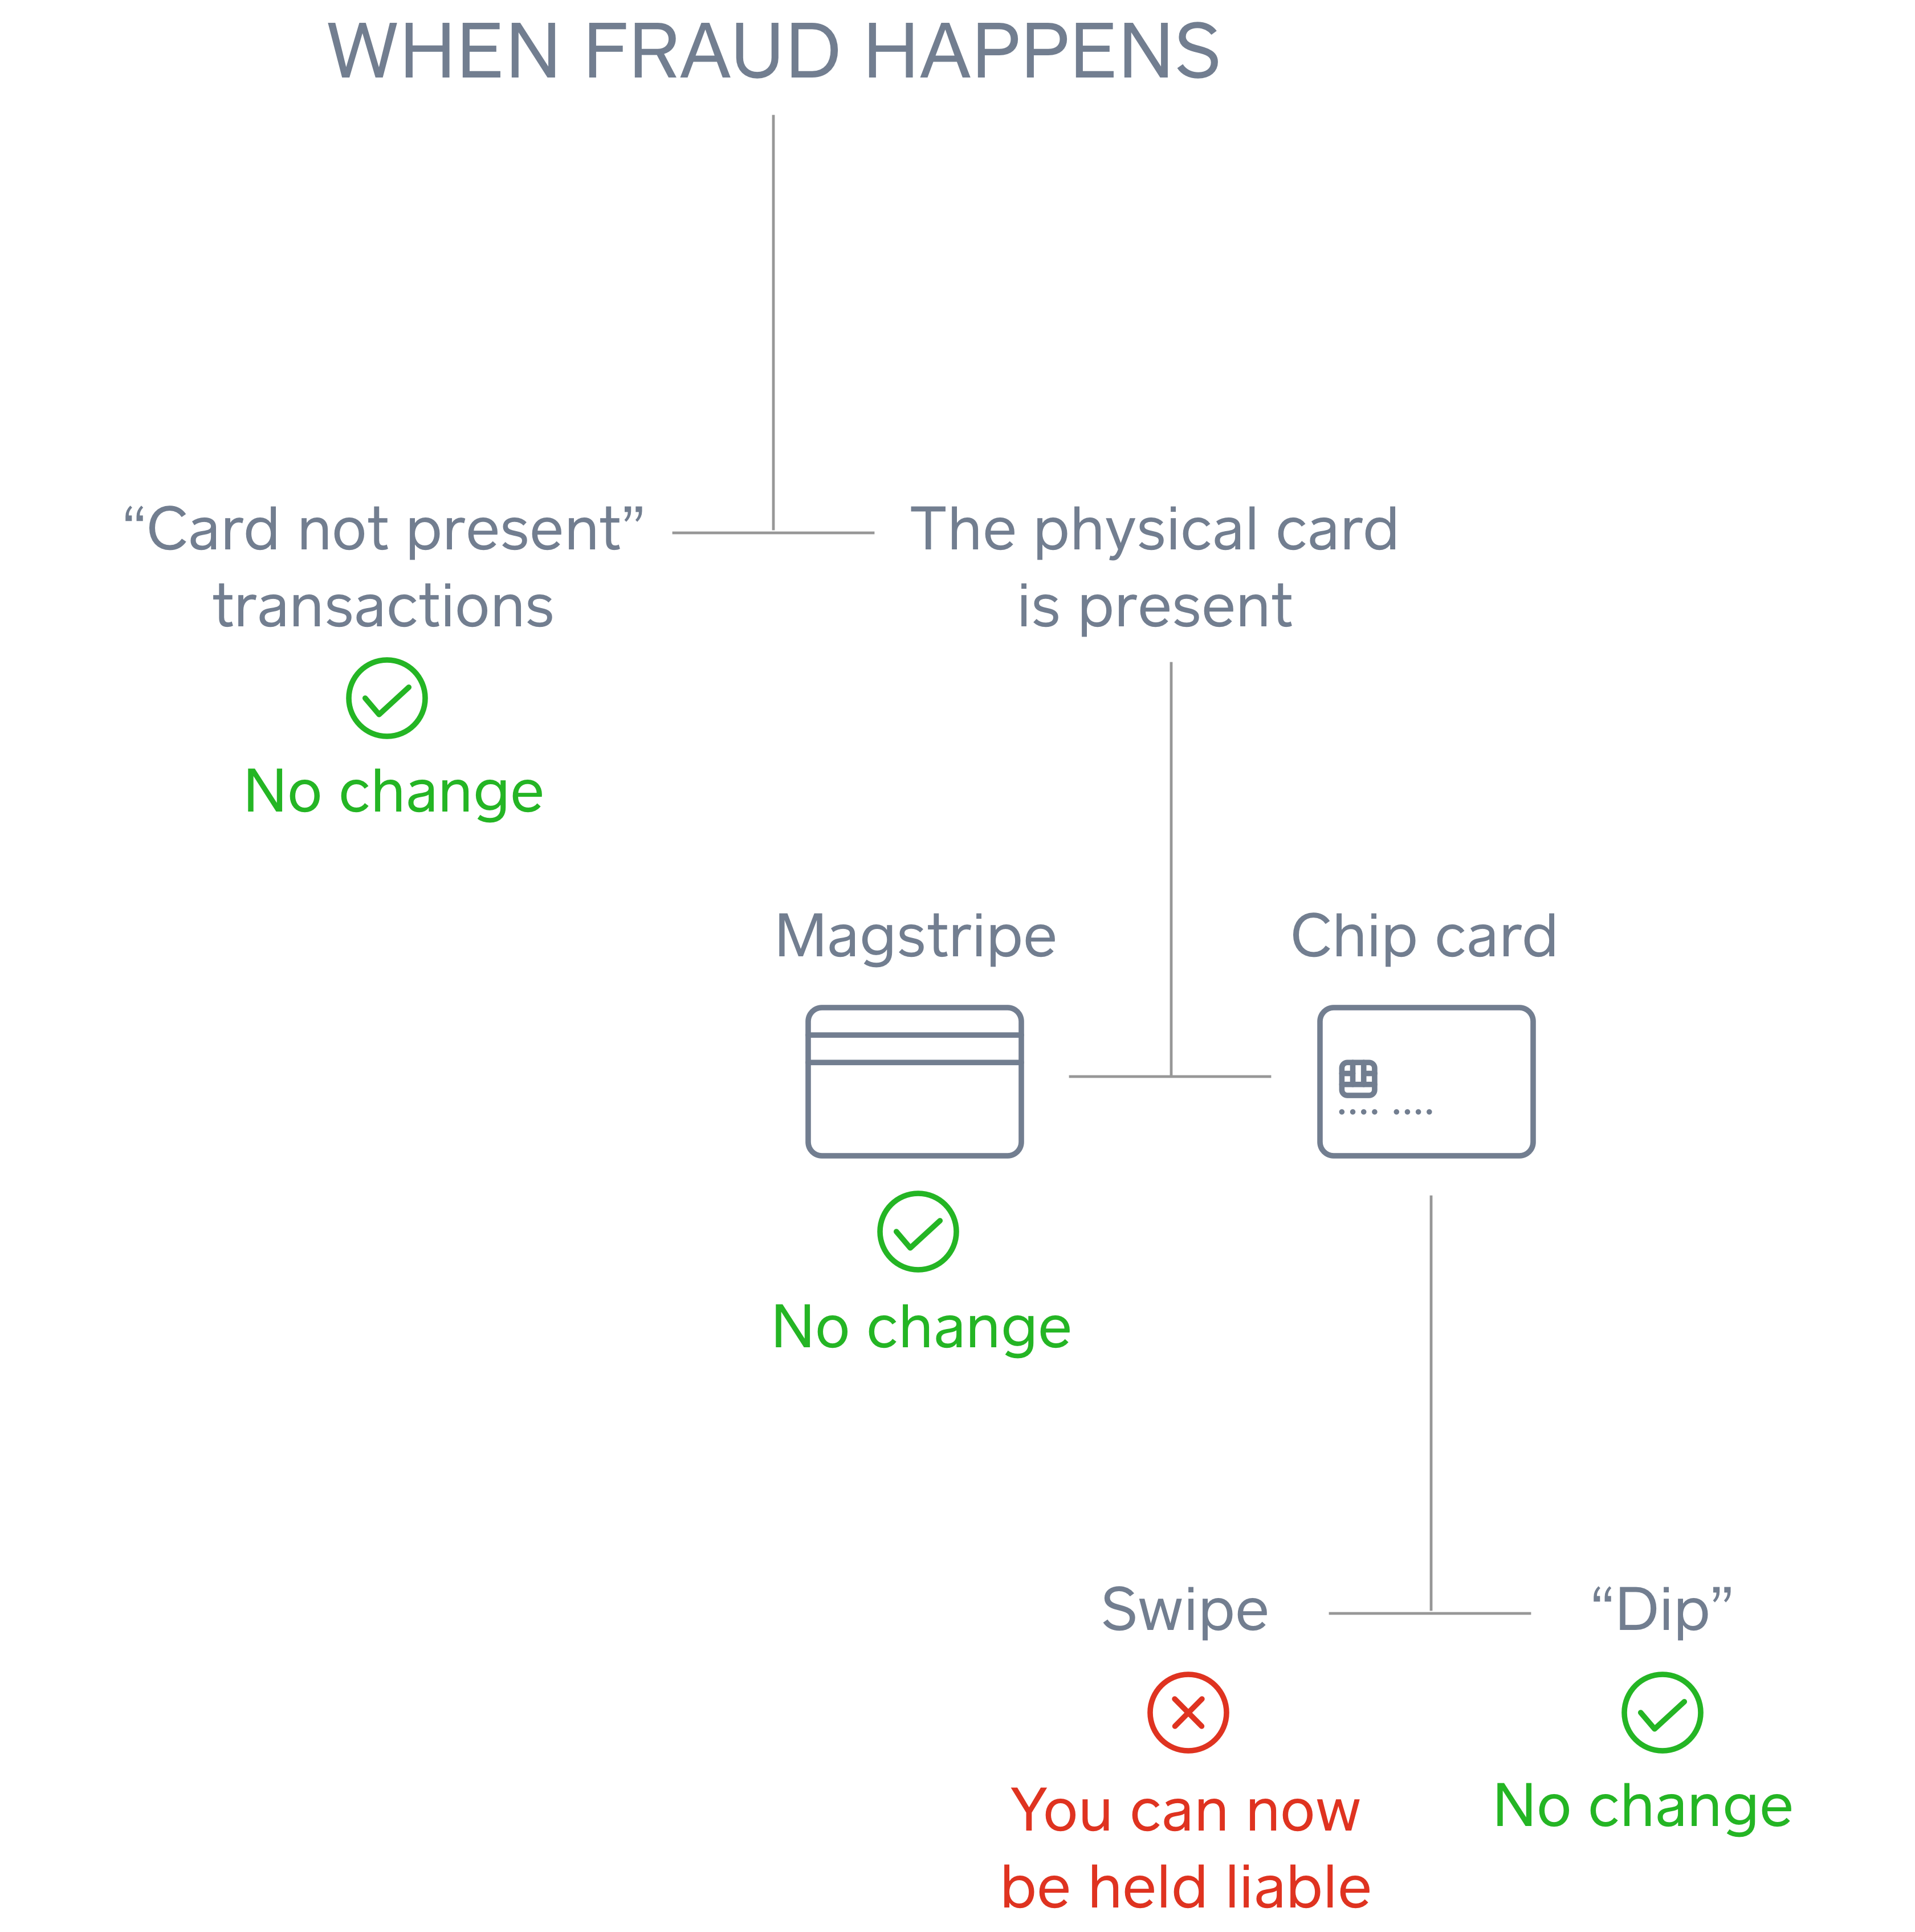 Diagram of how the merchant can be liable when fraud happens